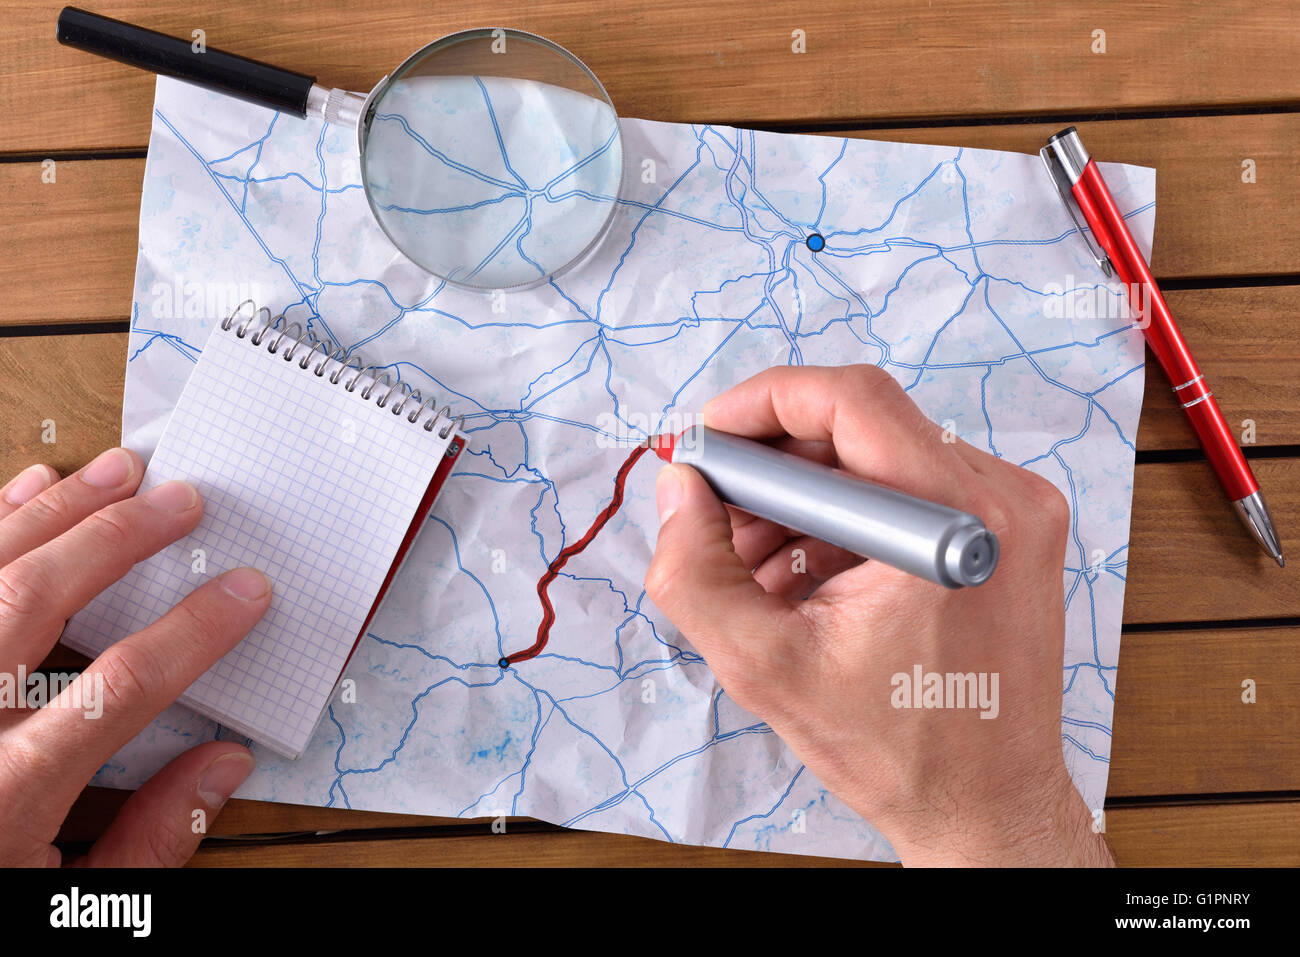 hands tracing a path on map on a wooden table. With pen notepad and magnifying glass. Top view - Stock Image